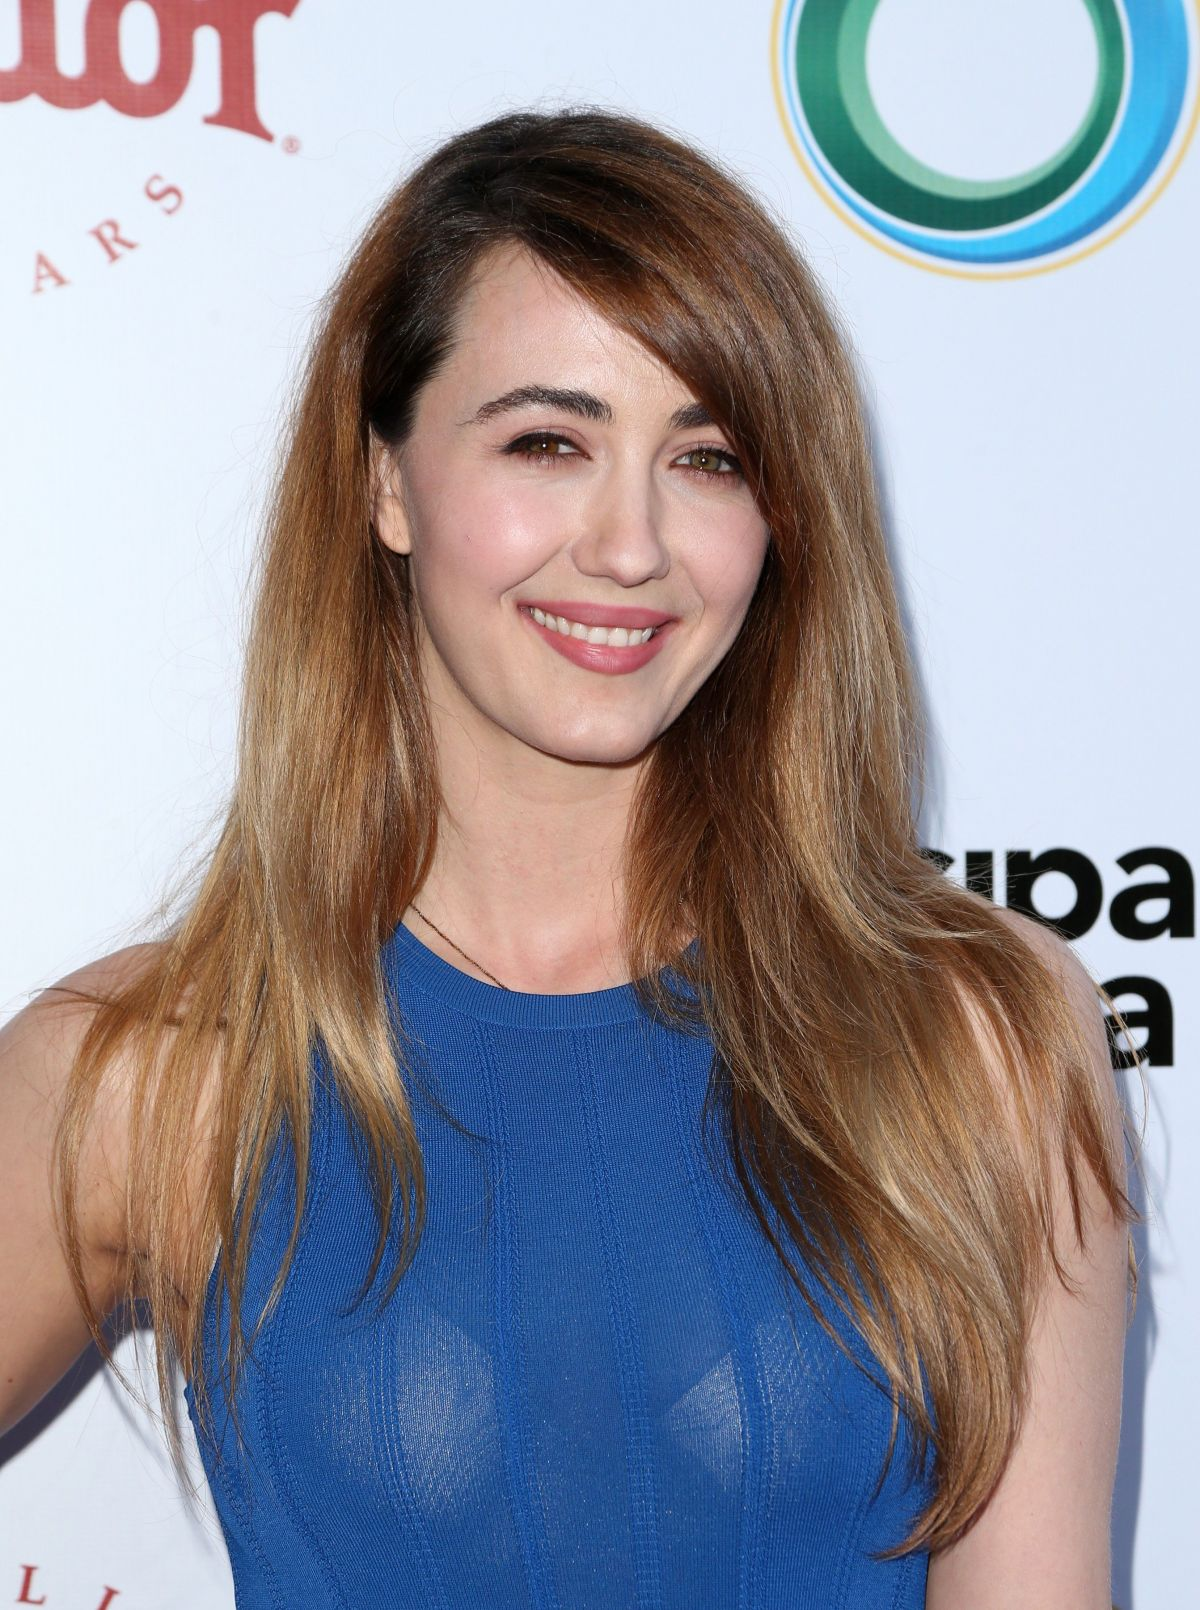 Fotos Madeline Zima nudes (47 foto and video), Pussy, Hot, Twitter, bra 2006